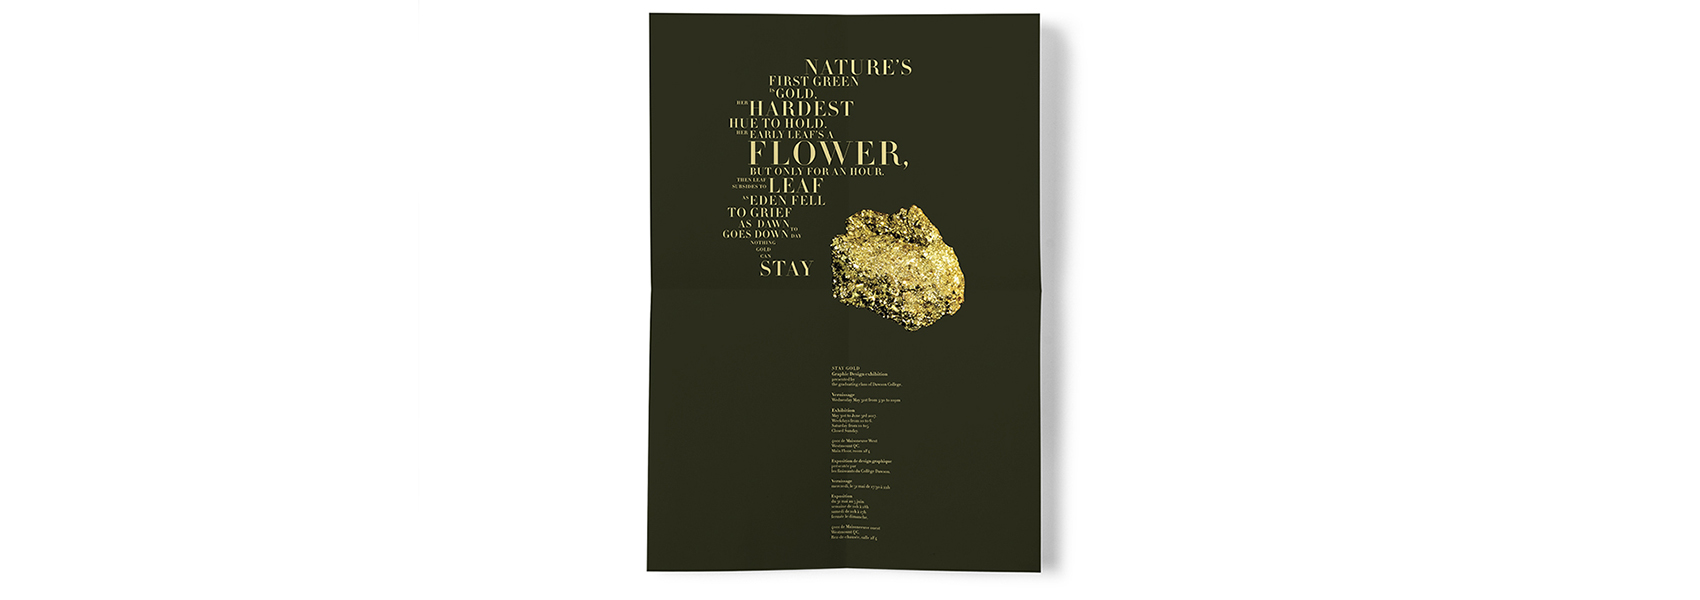 Image of Poster featuring Gold and a Robert Frost Poem